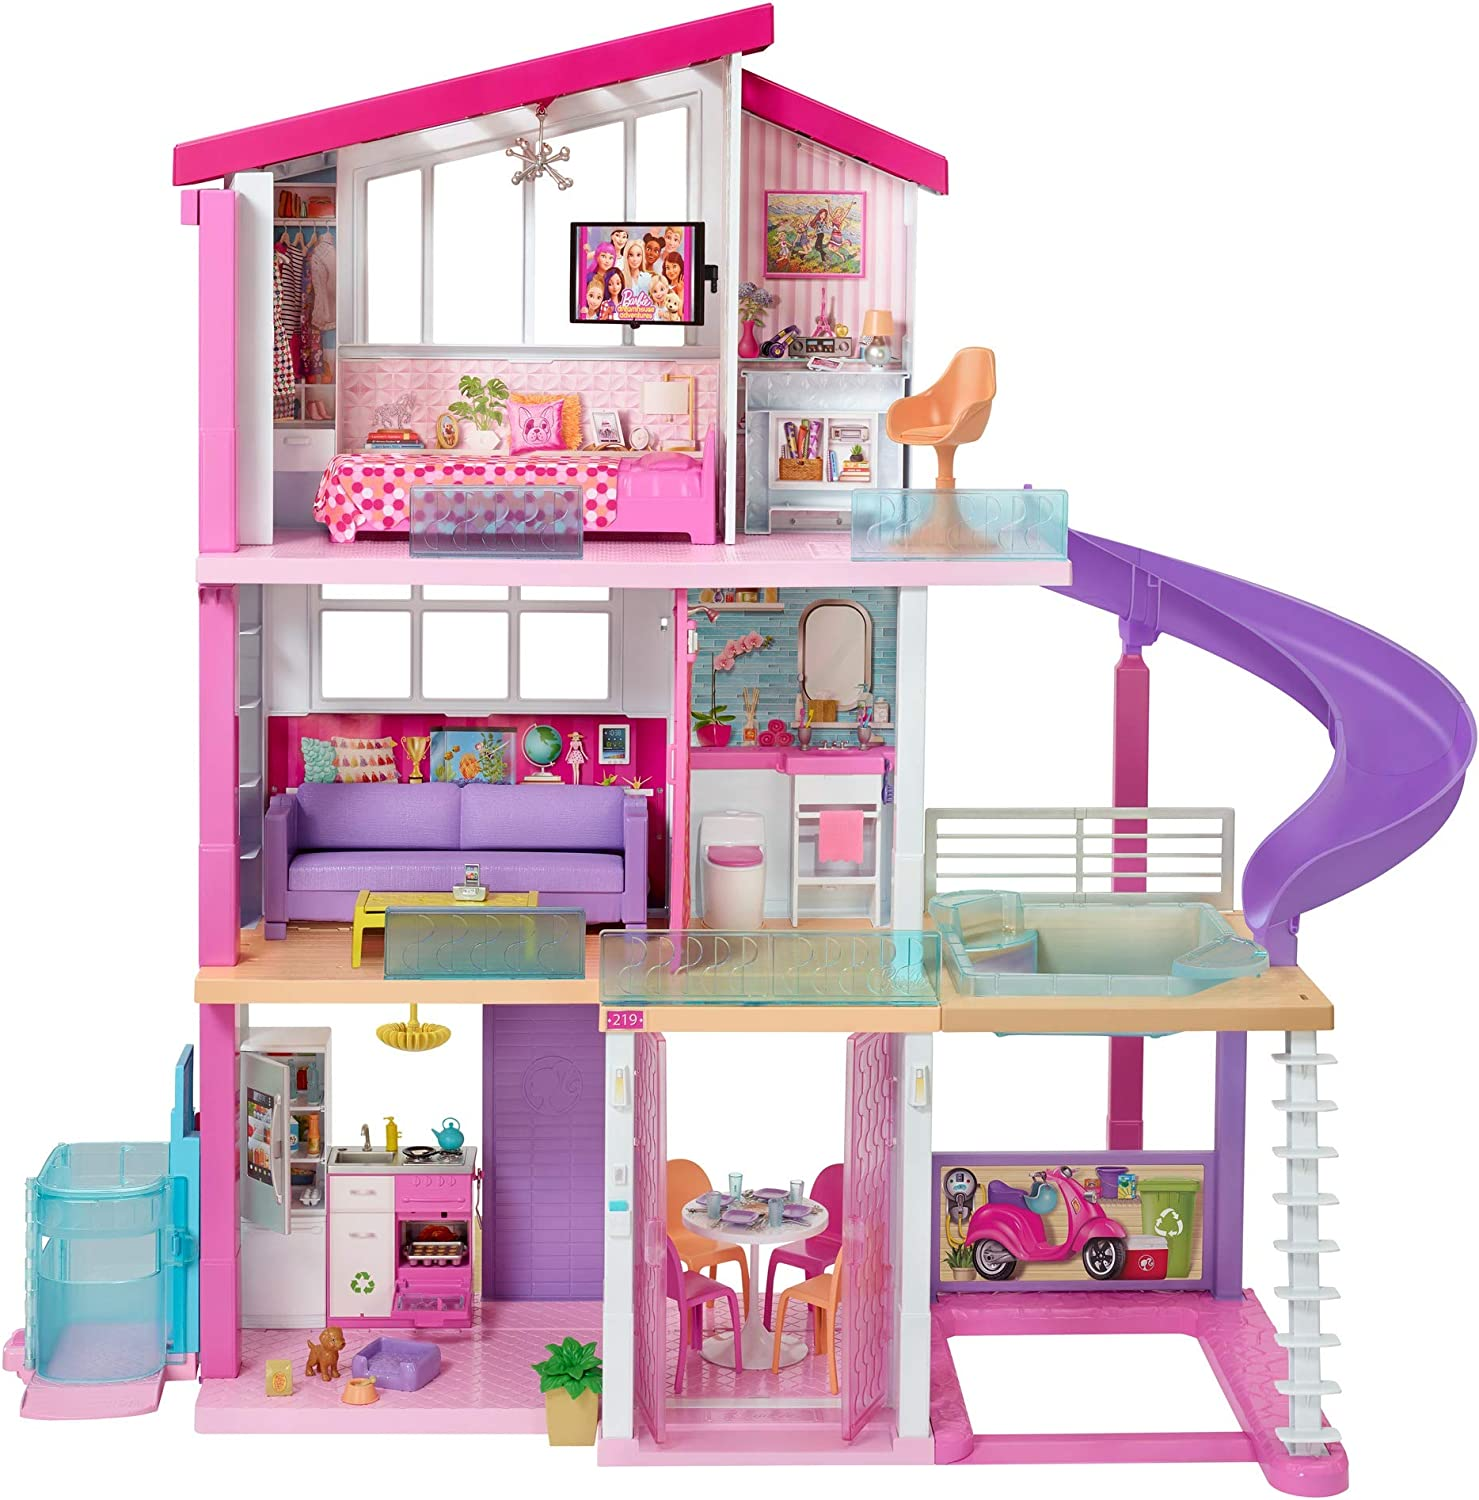 Barbie Dreamhouse Dollhouse With Wheelchair Accessible Elevator Pool Slide And 70 Accessories Including Furniture And Household Items Gift For 3 To 7 Year Olds Multicolor Toys Games